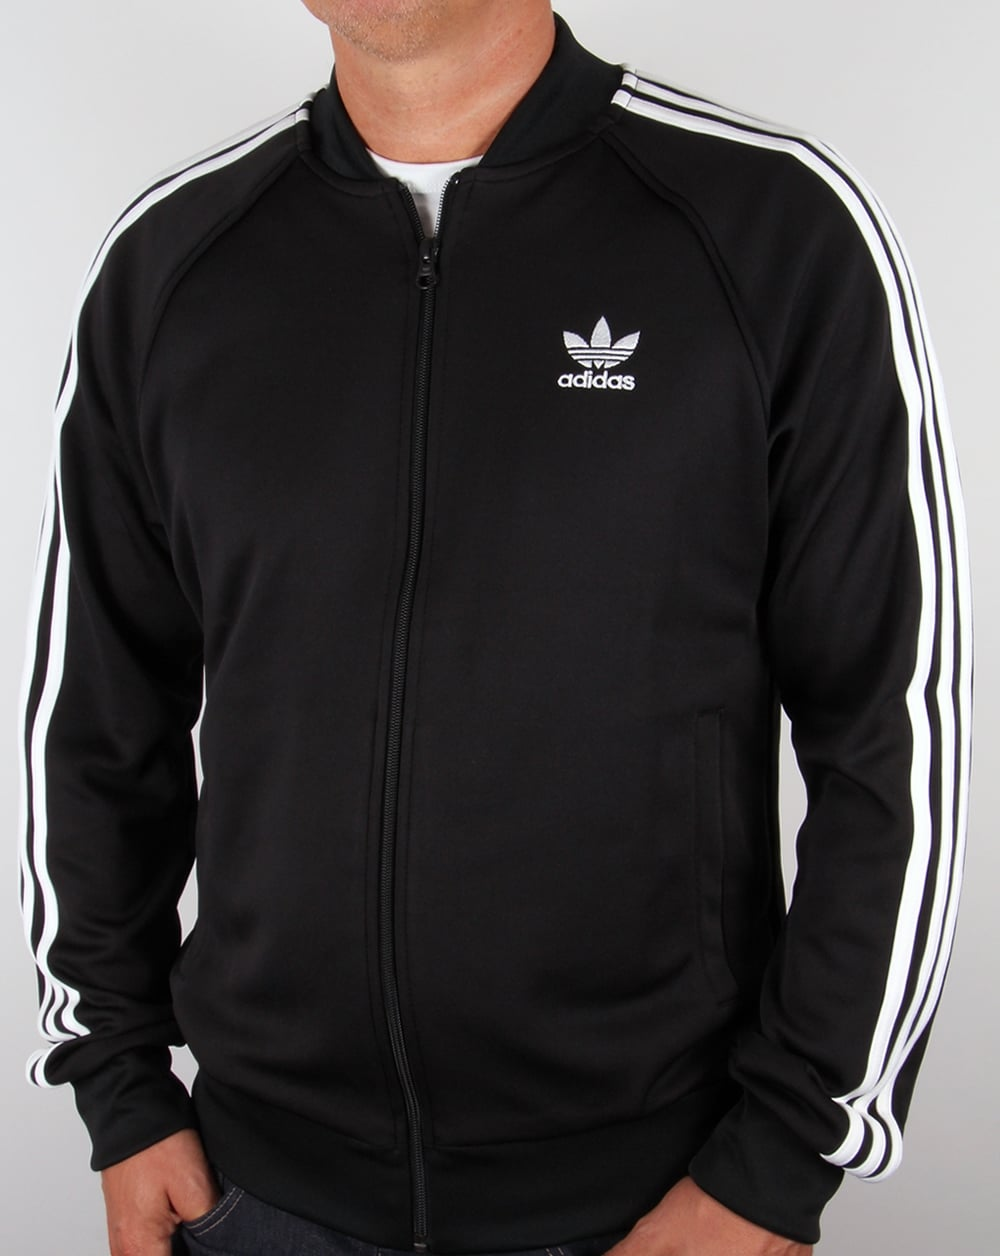 Adidas Originals Superstar Track Top Black/White